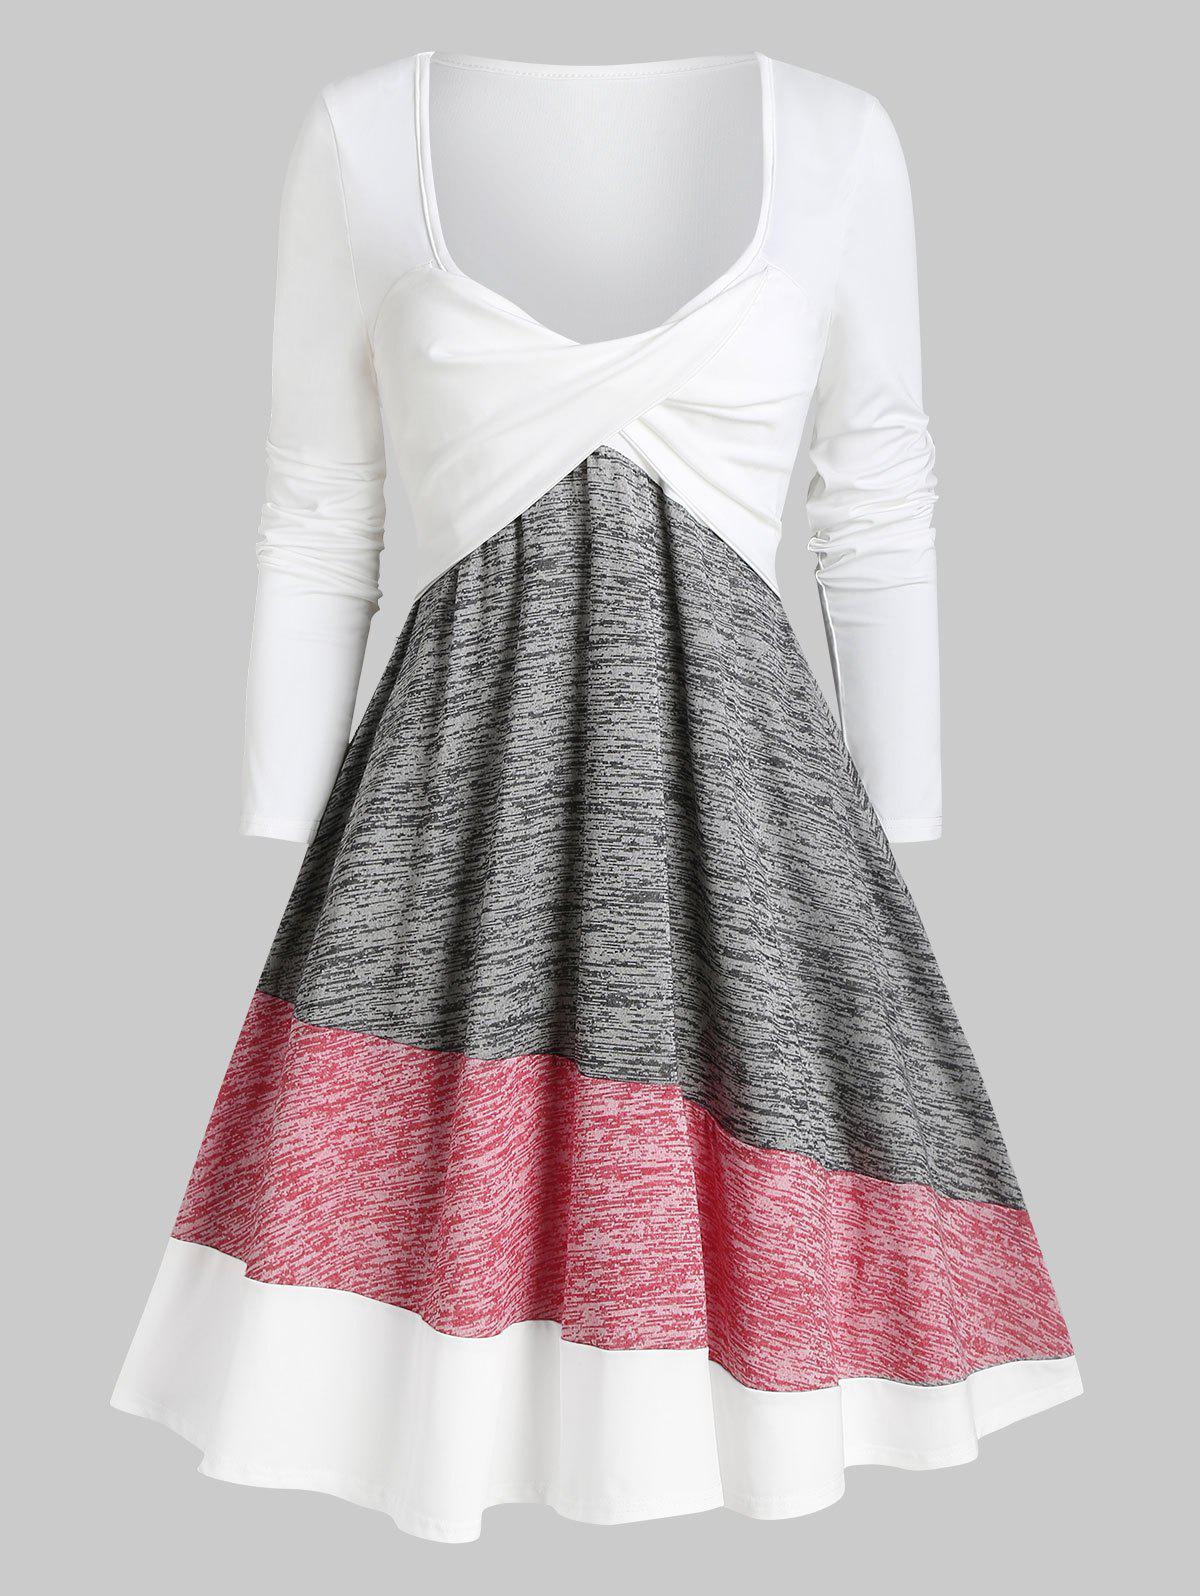 Twisted Colorblock Plunging Tee Dress - multicolor XXL